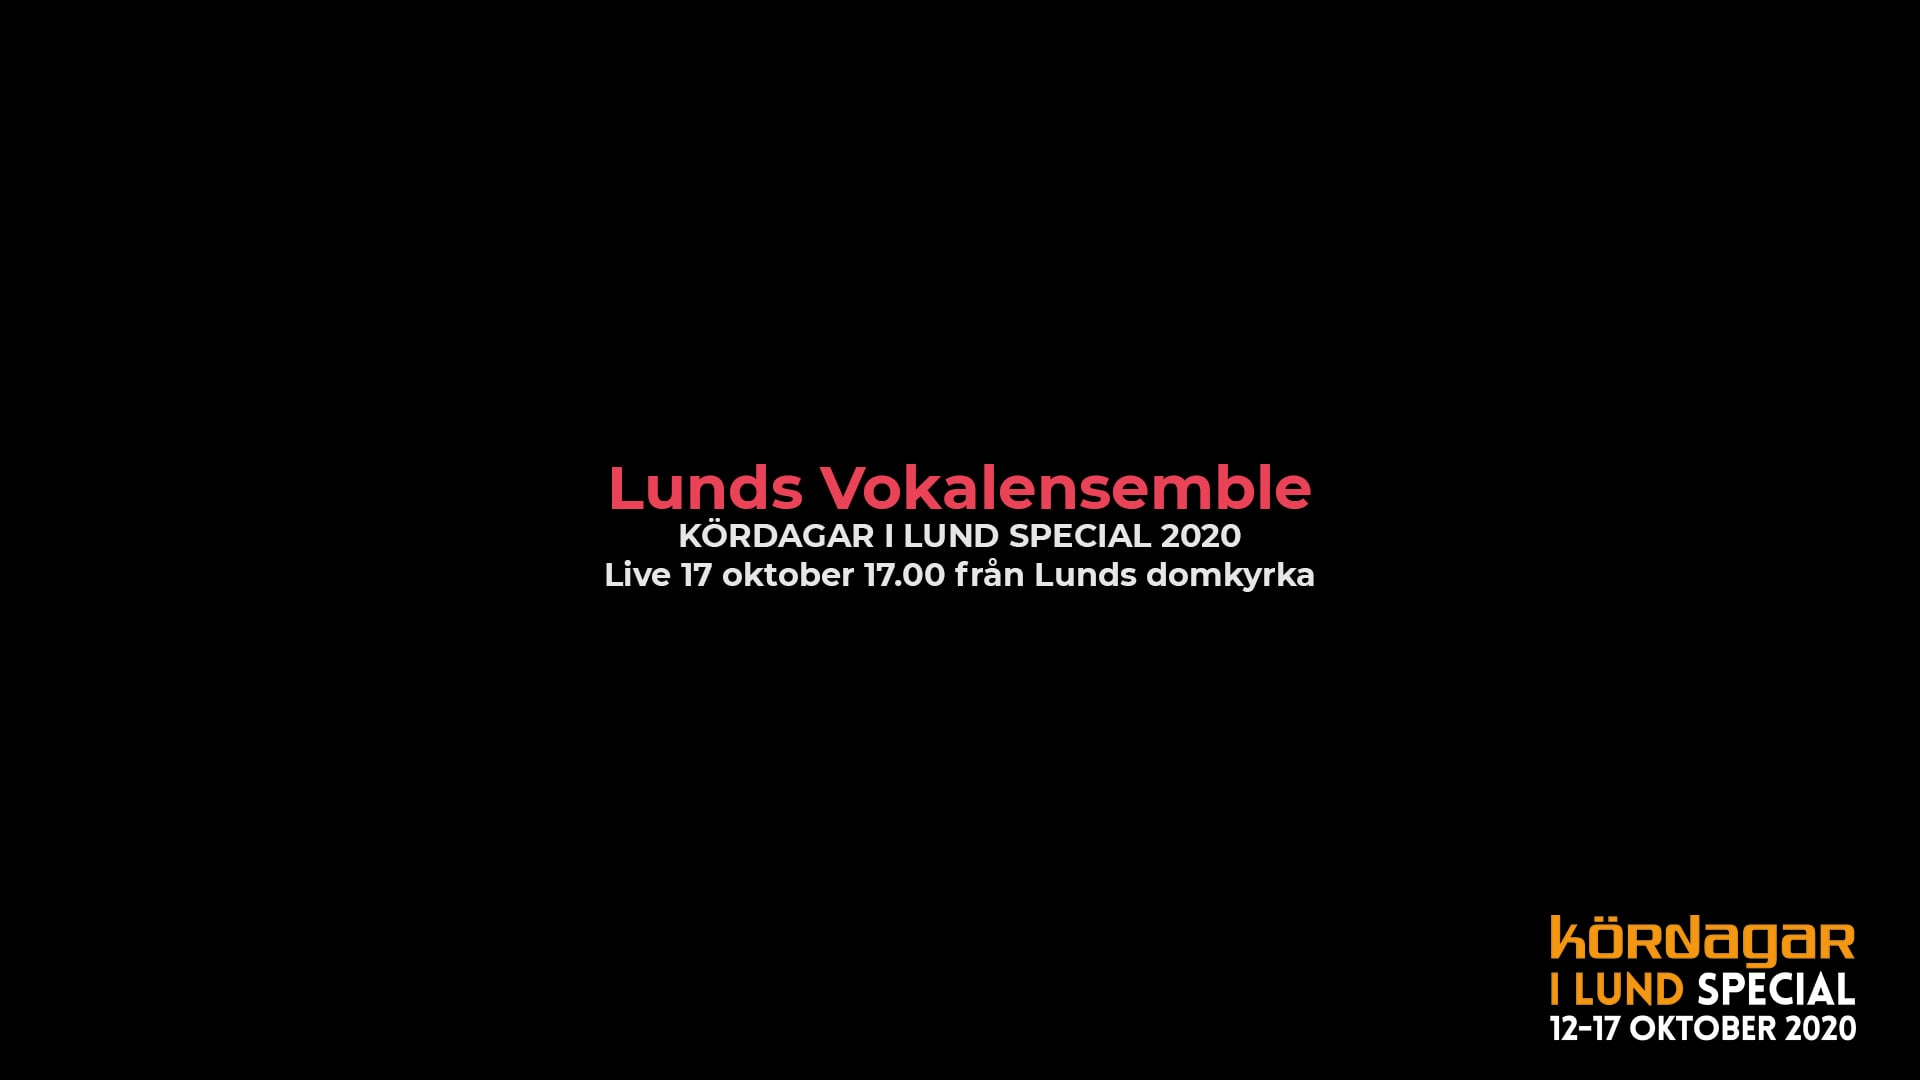 lund choral festival - lunds vokalensemble